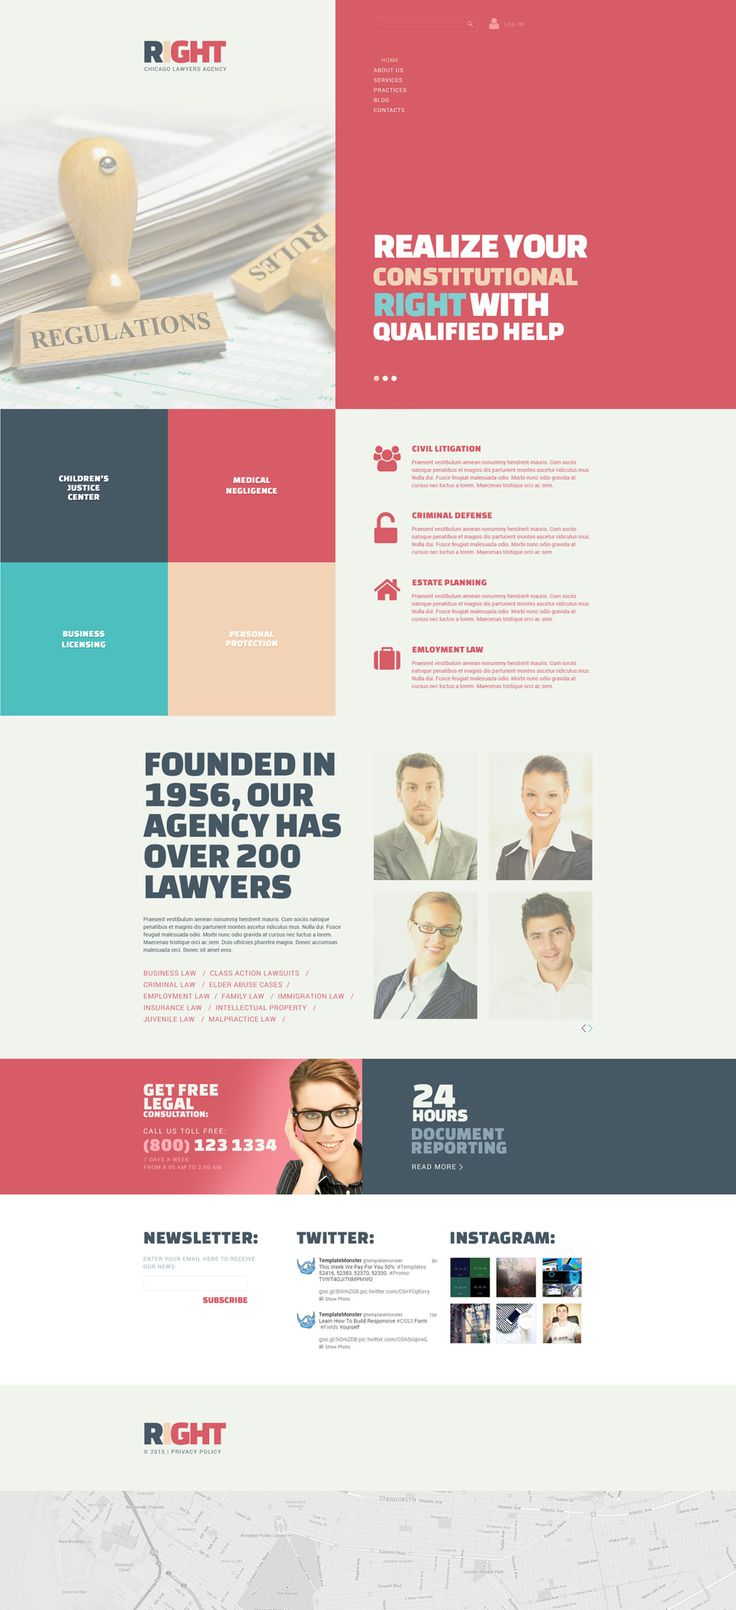 15 Best Lawyer Images On Pinterest Avocado Lawyer And Website